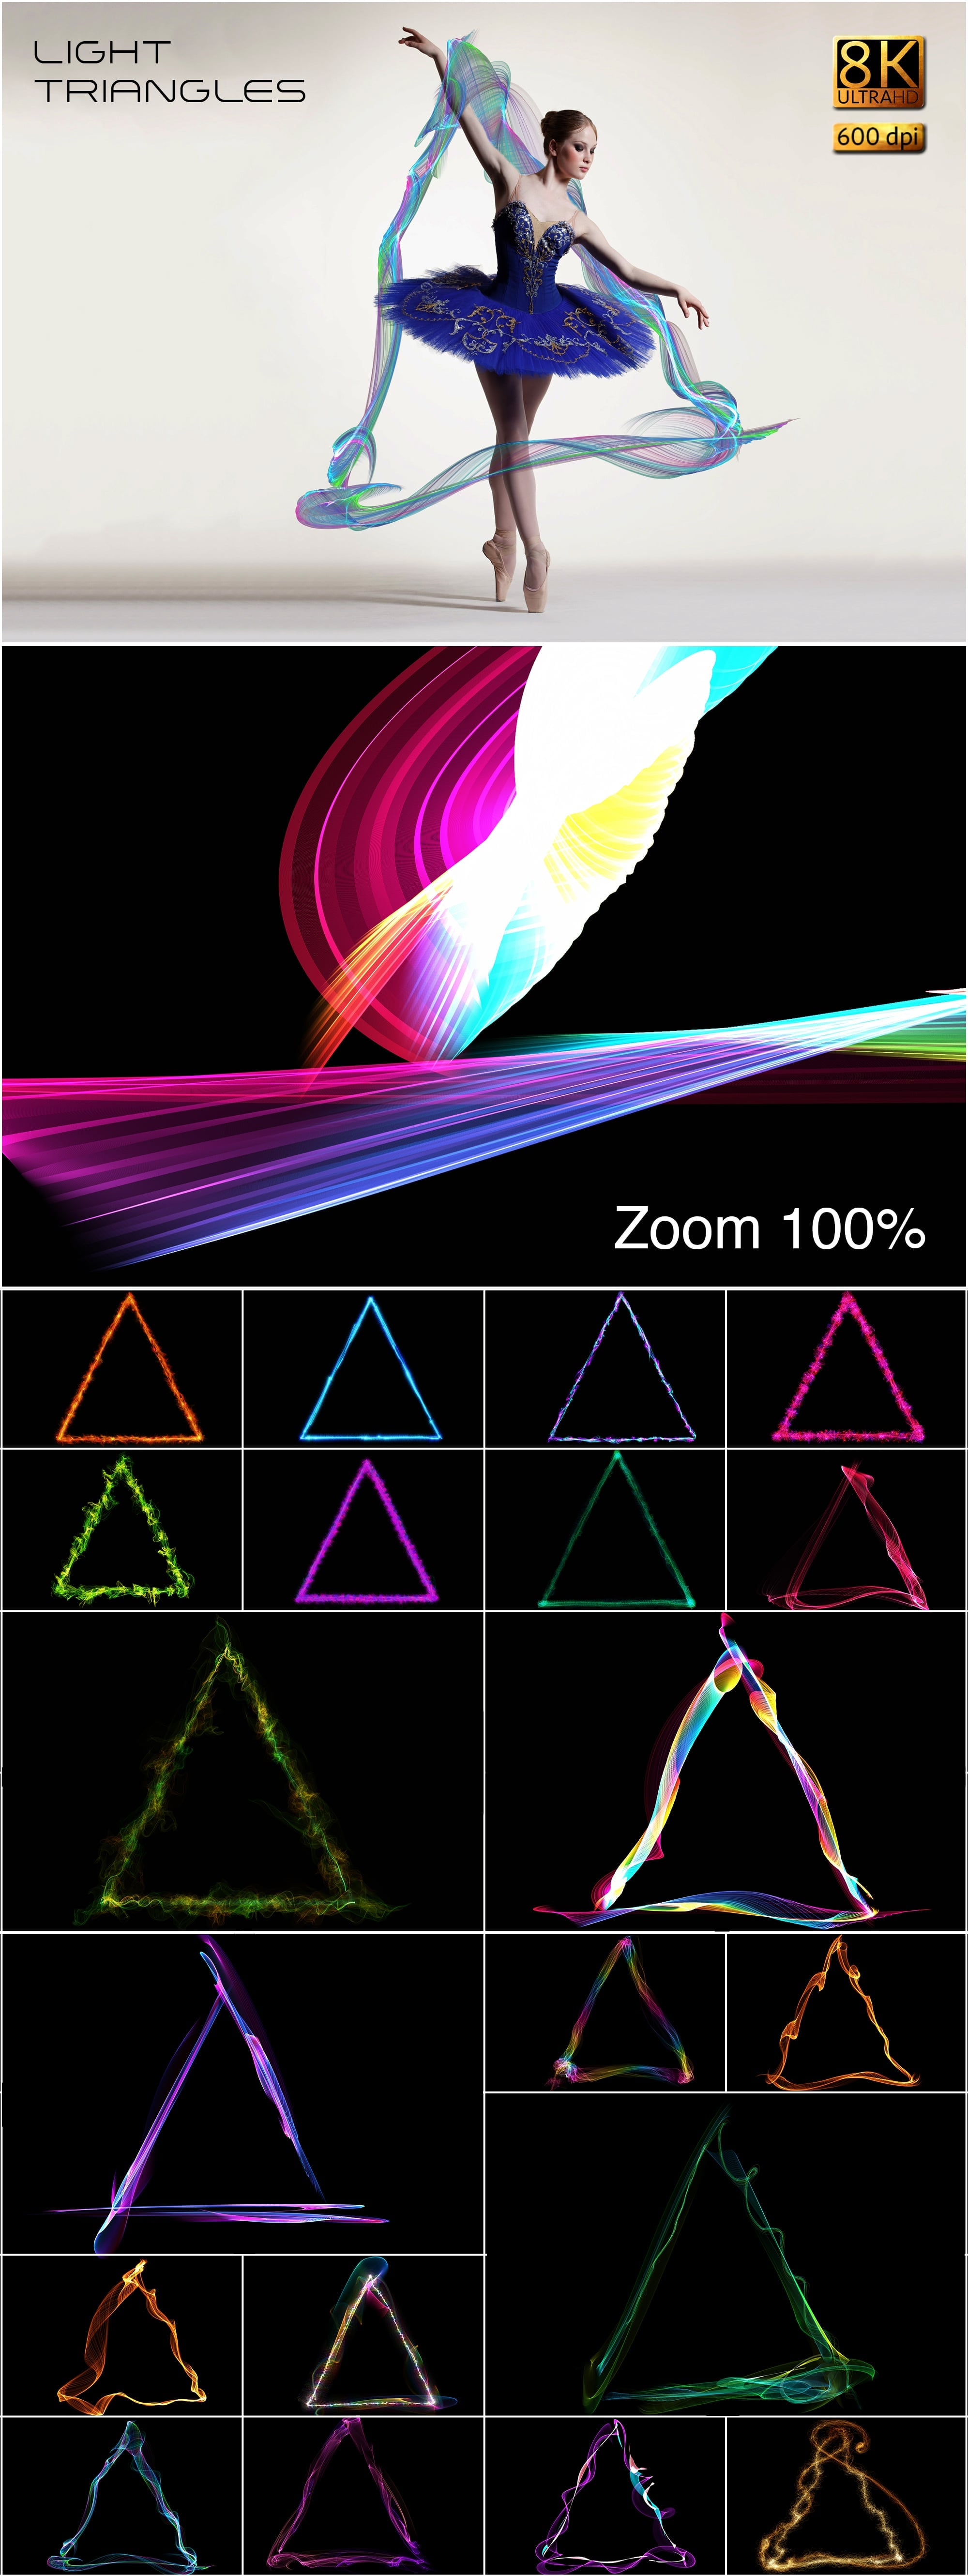 877 Detailed  Alien Overlays - $24 - Light Triangles